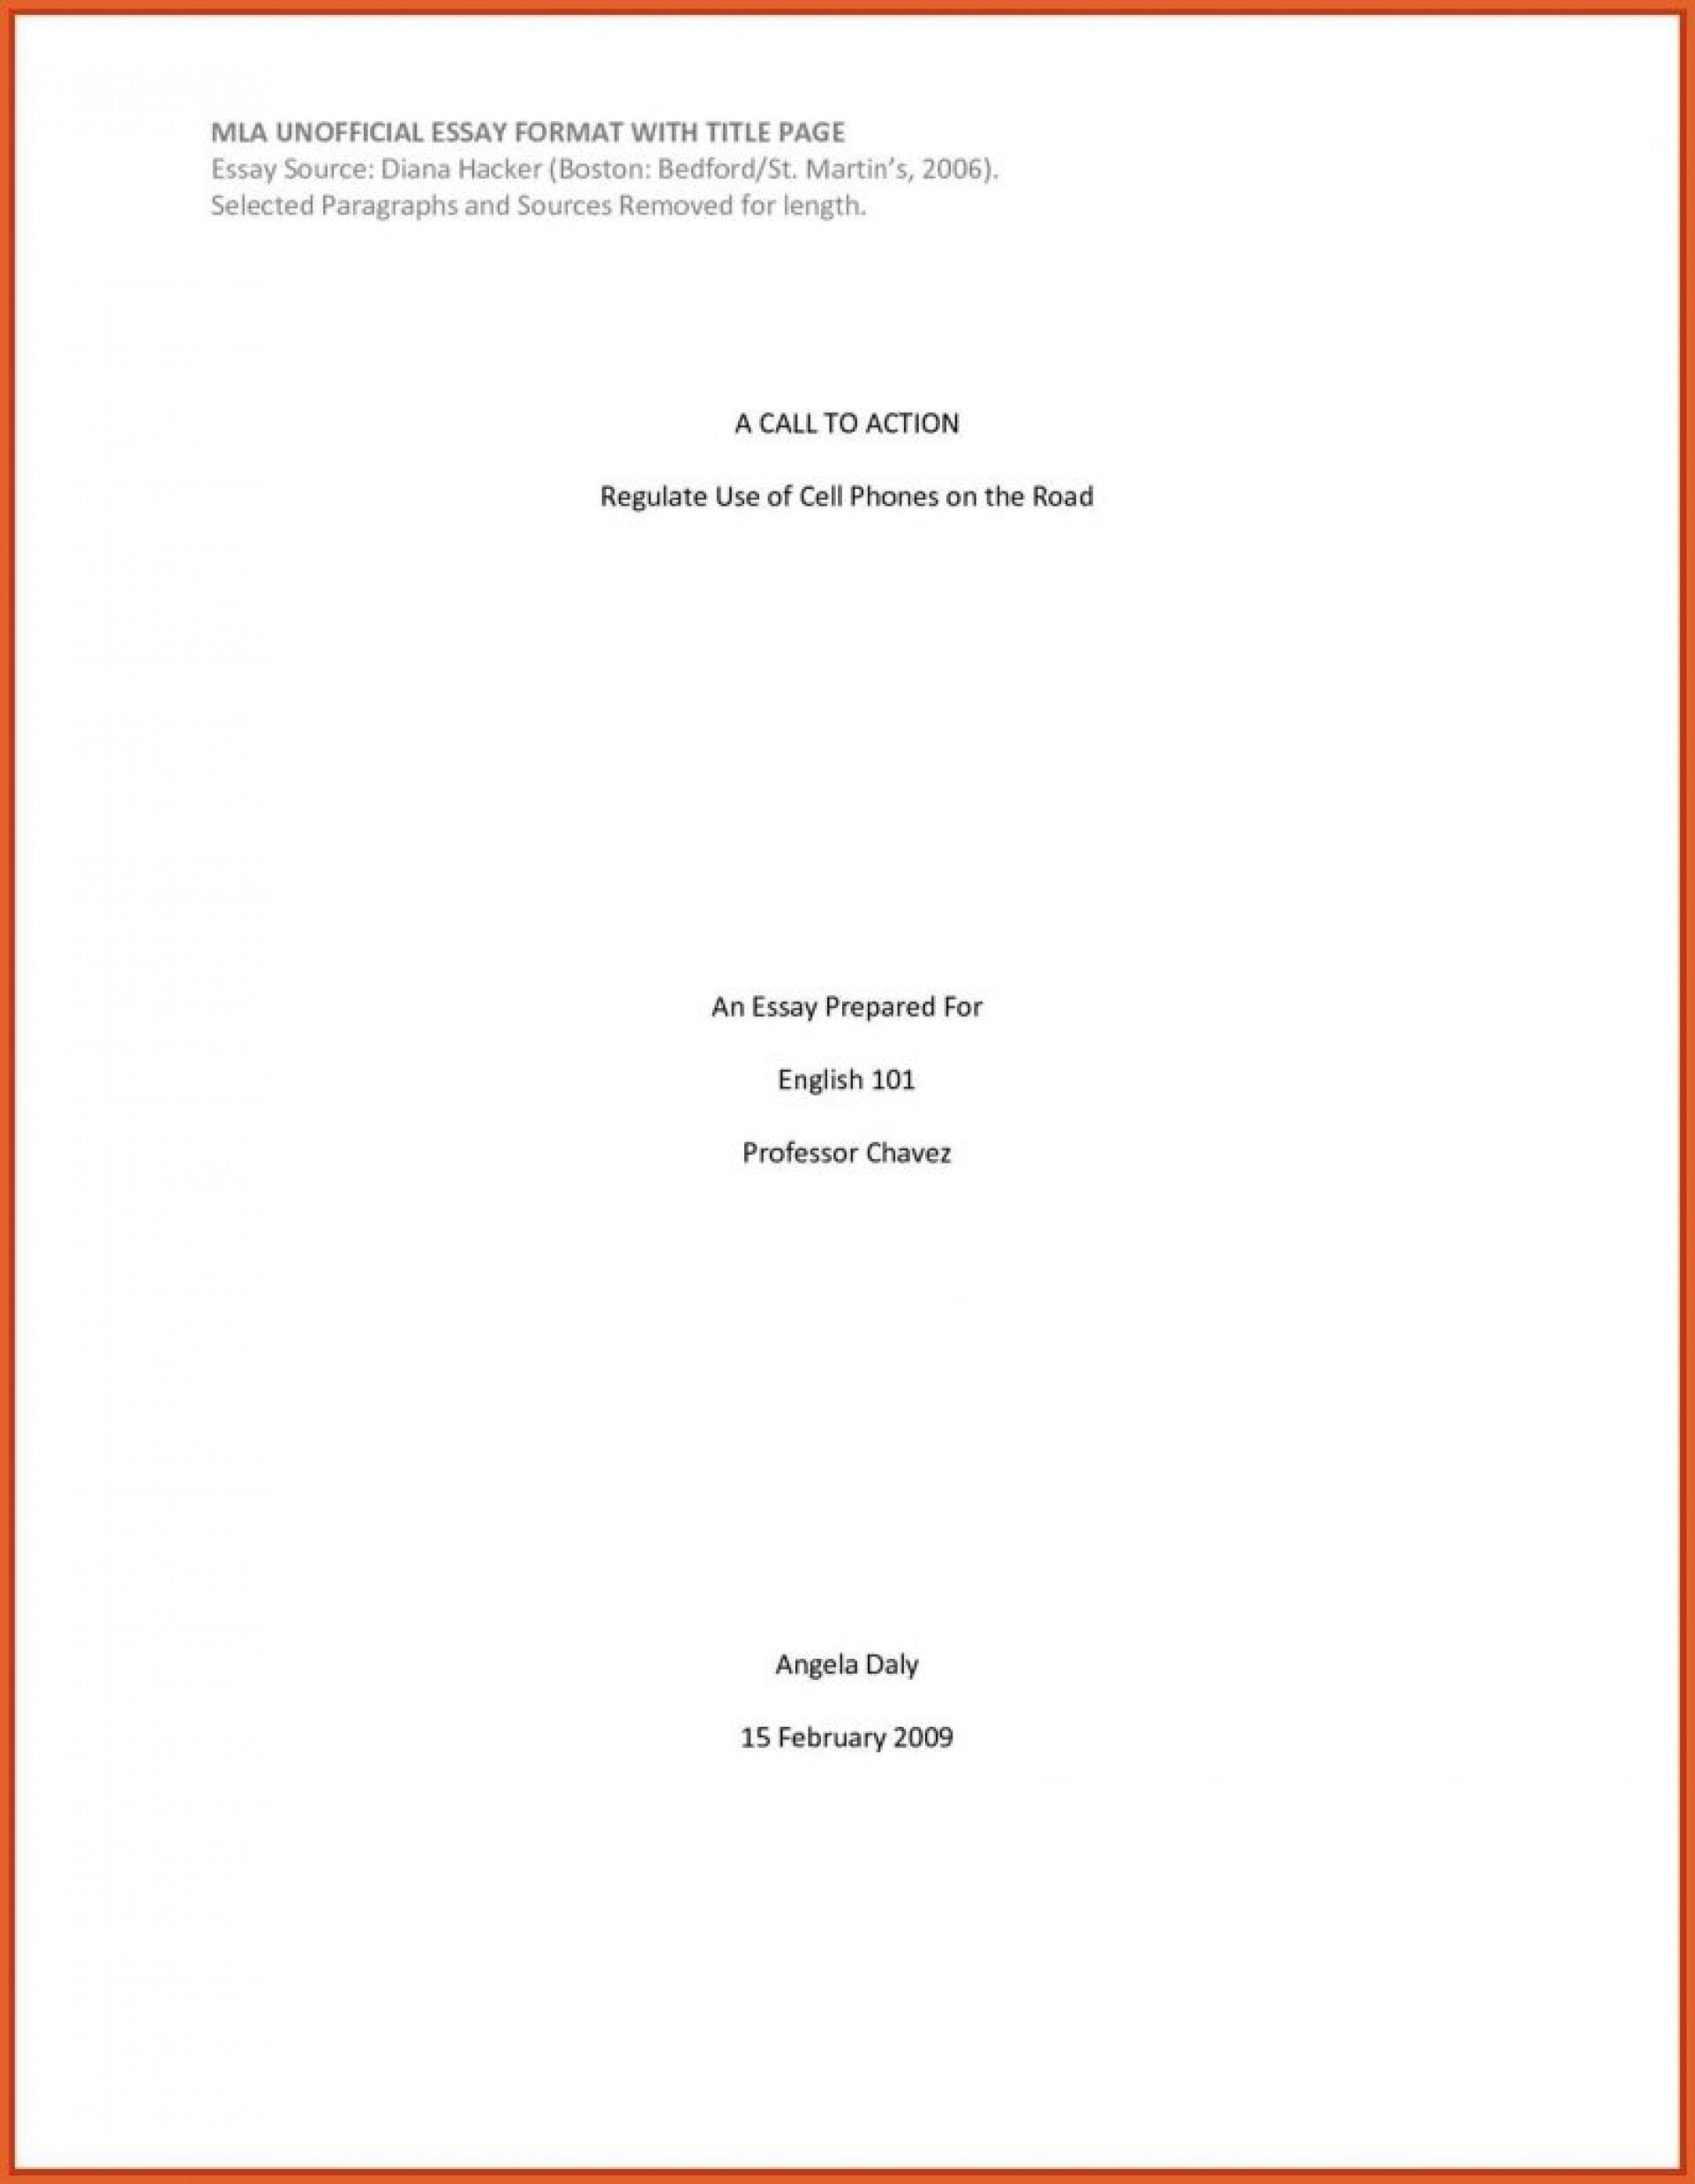 001 First Page Research Paper Mla Format Title Cover Template Sheet For Purdue Owl Keepvip Teaching Sample Unique Style The Of A 1920